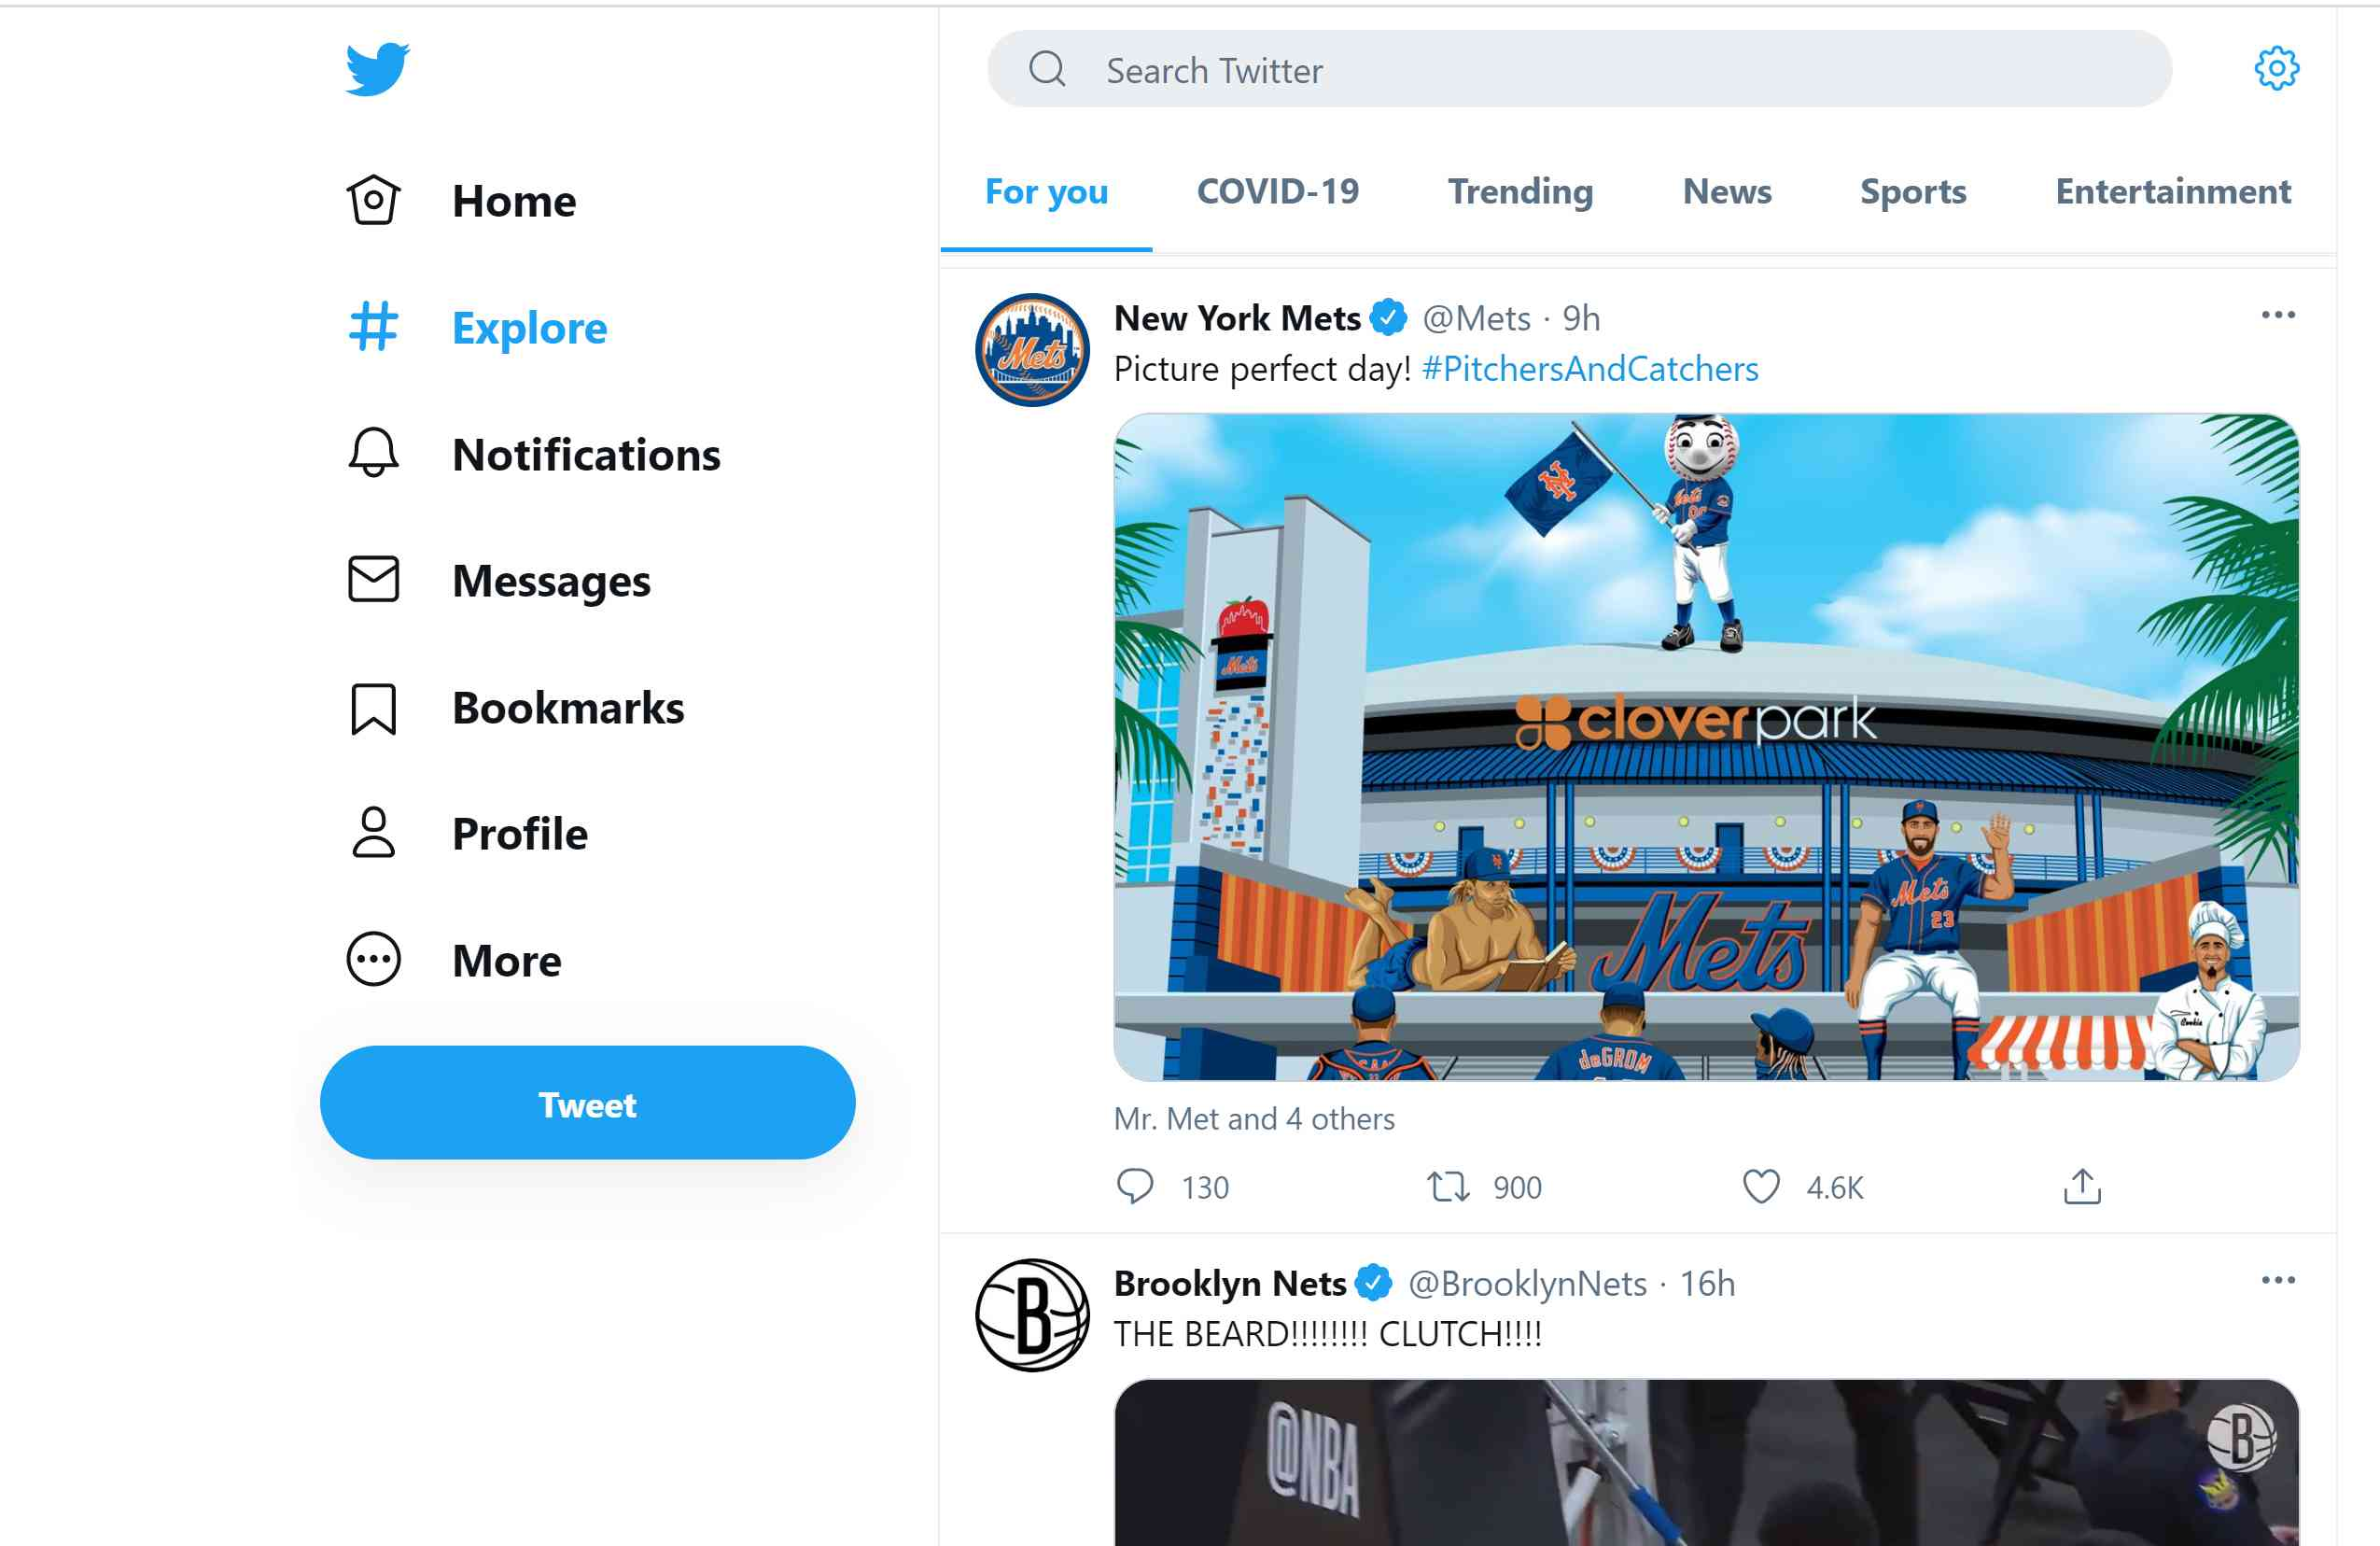 Twitter's Explore page.